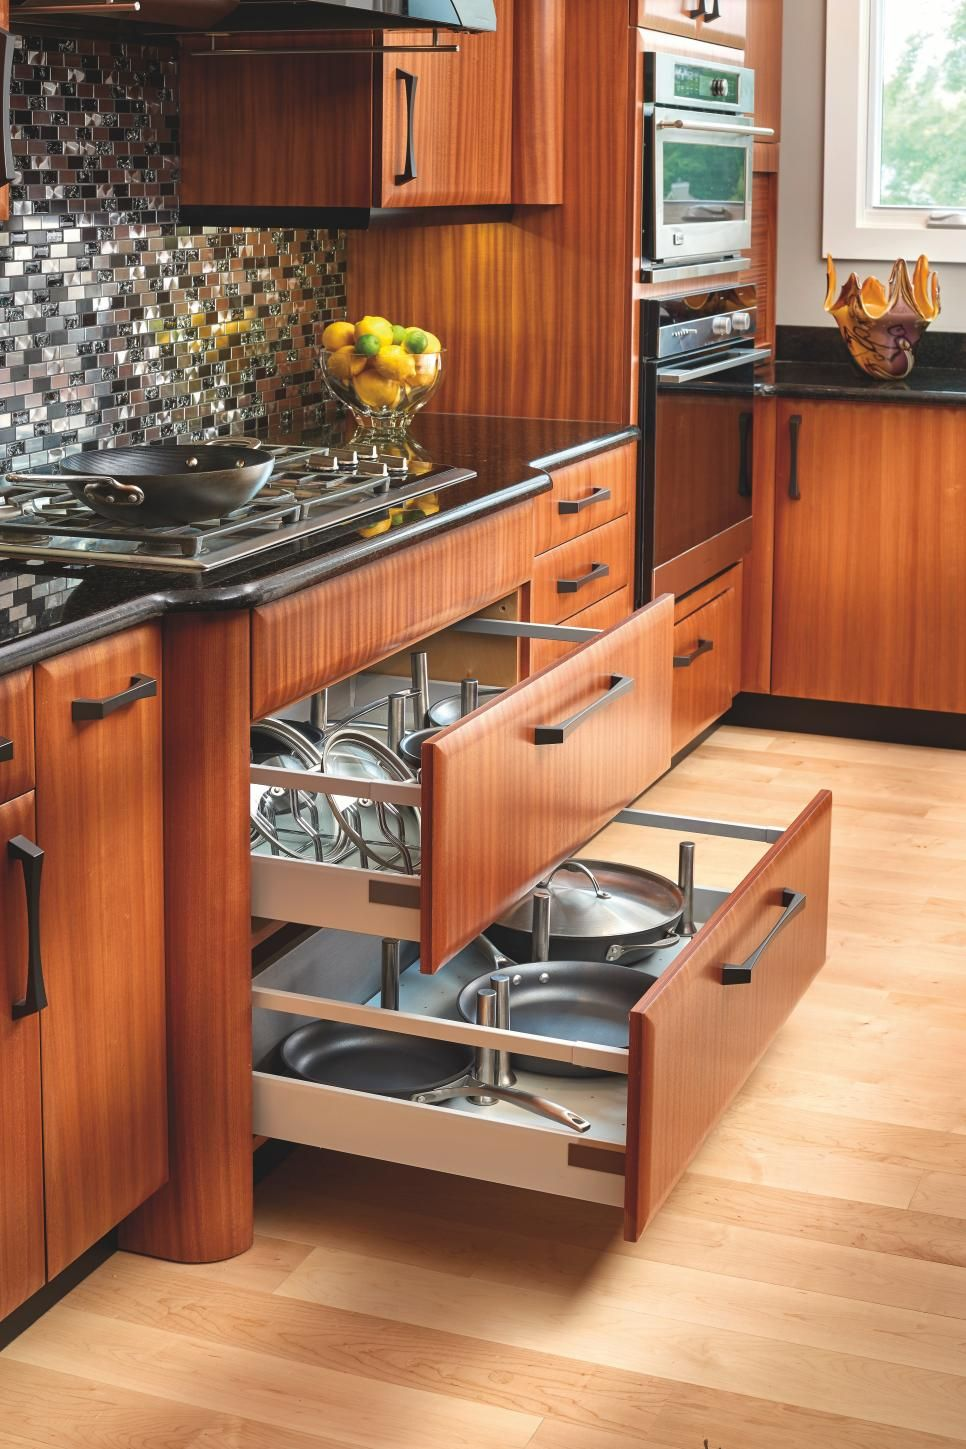 Kitchen Storage Ideas For Pots And Pans Part - 33: Kitchen Design Trend: Storage Pull-Outs